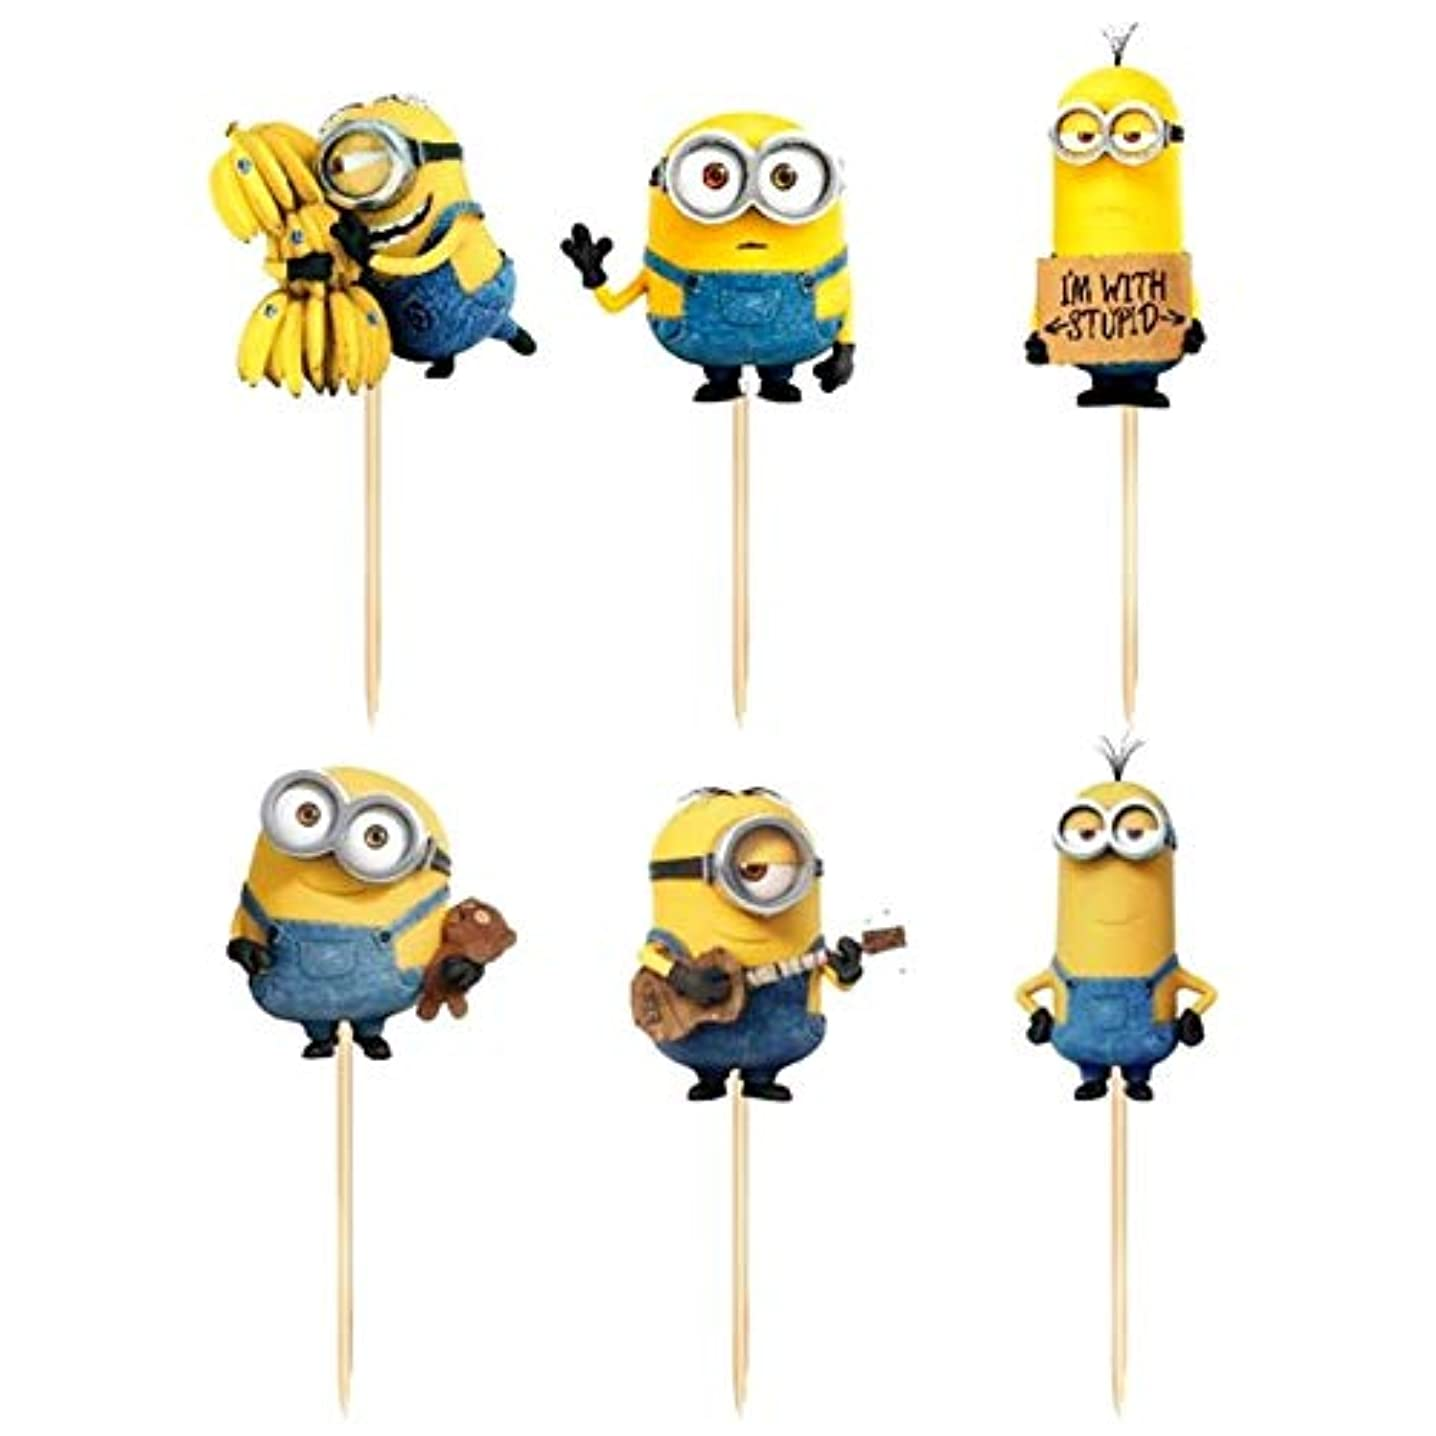 Cupcake Toppers - 24pcs cartoon minions cupcake toppers baby shower kids birthday wedding decoration supplies cake flag despicable me banana